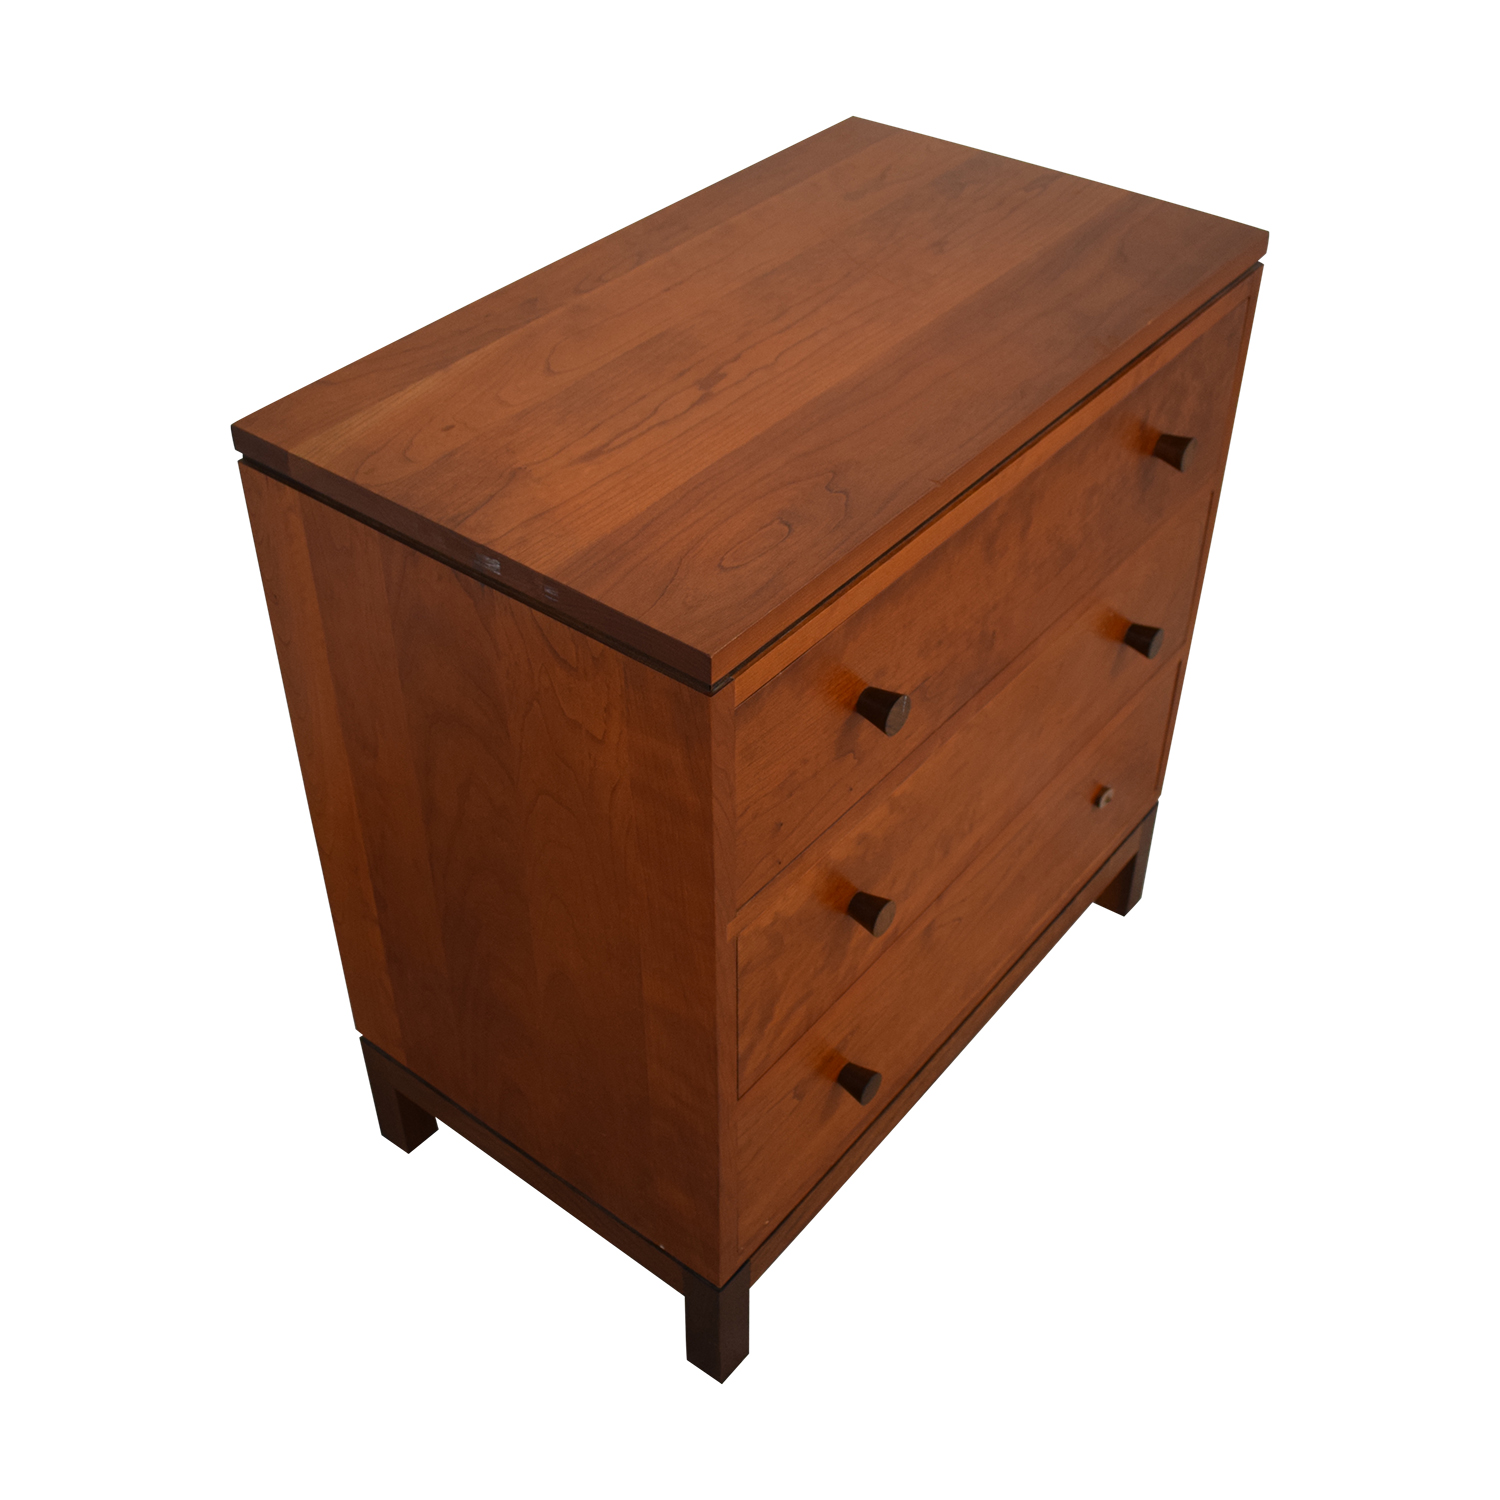 Stickley Furniture Shaker Style Dresser Stickley Furniture